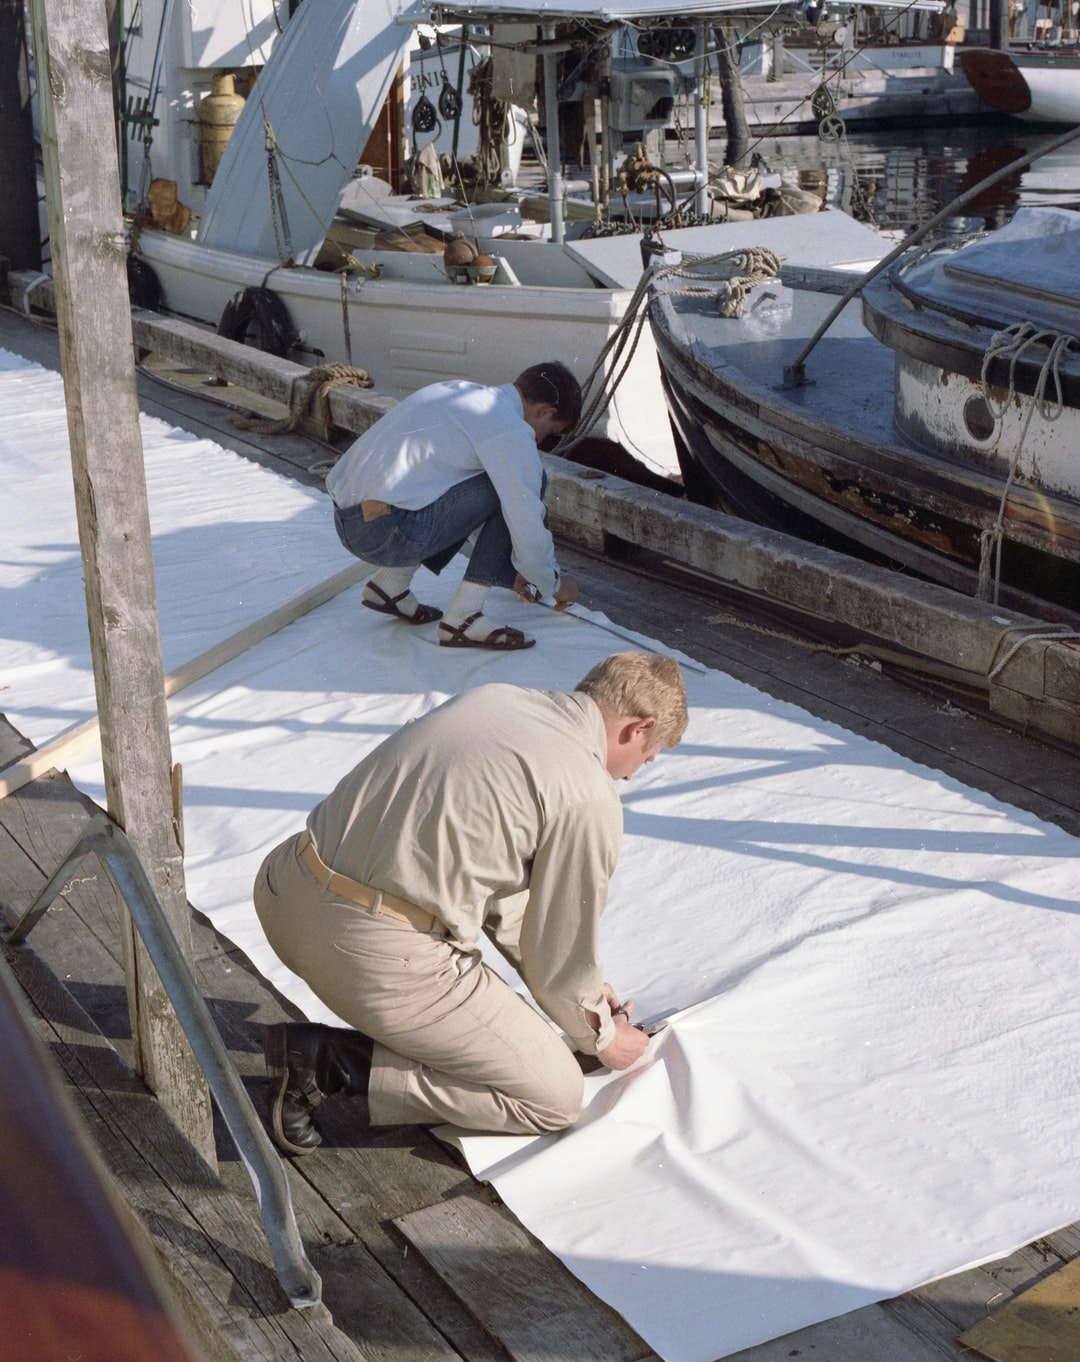 Cutting signal cloth for draping a hydrographic signal with. Operations of ESSA Ship PATTON.